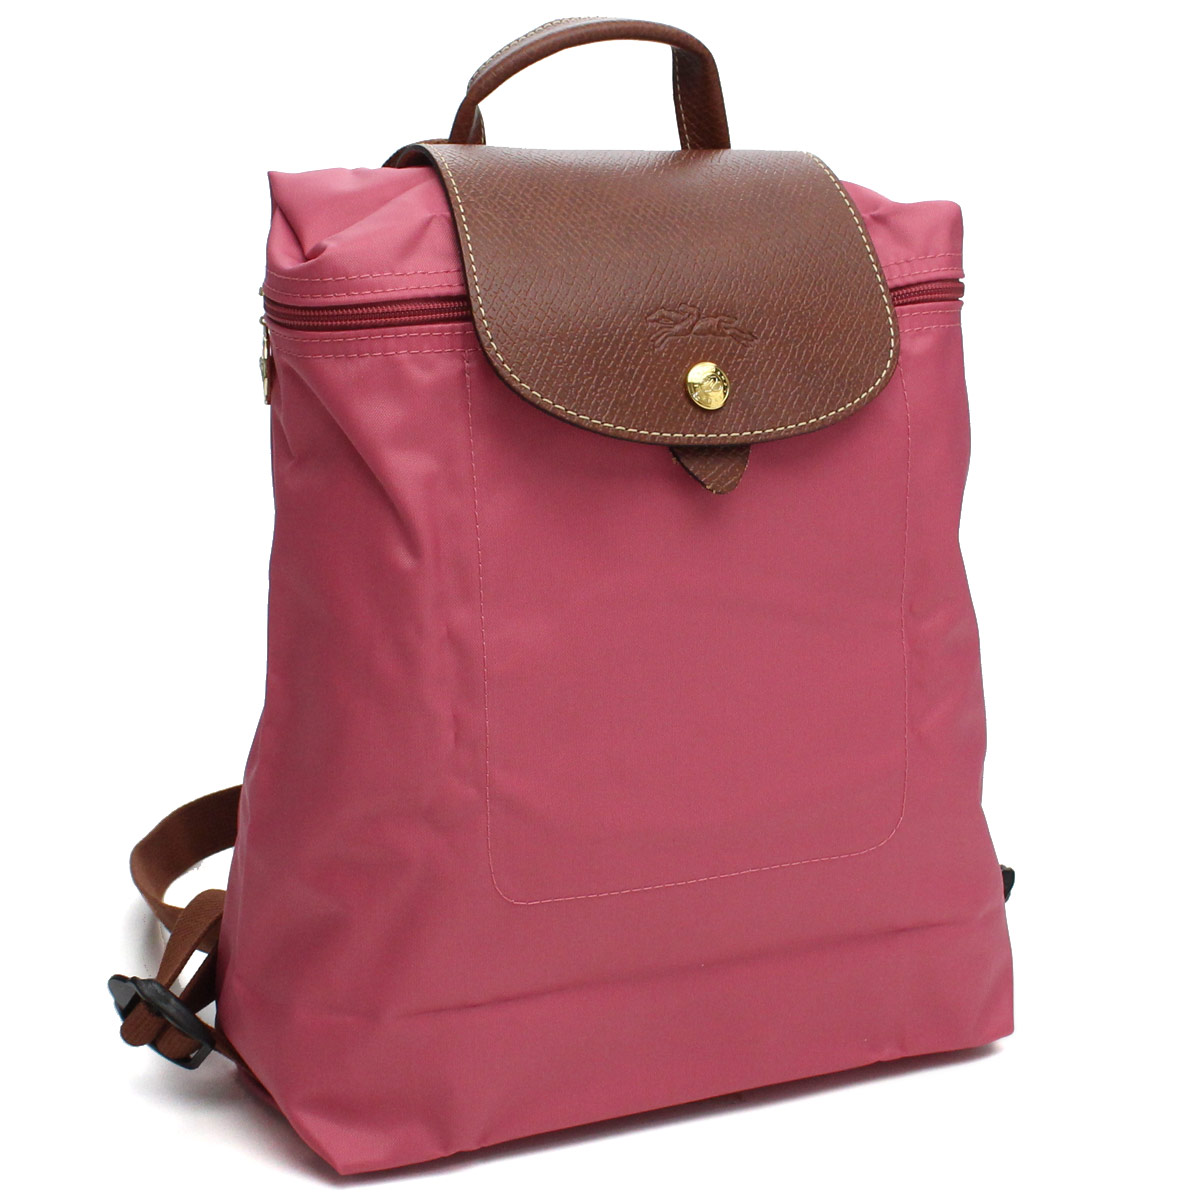 4981026f9 Bighit The total brand wholesale: Longchamp (LONGCHAMP) LE PLIAGE le  プリアージュバックパックリュック 1699 089 A27 pink system | Rakuten Global Market